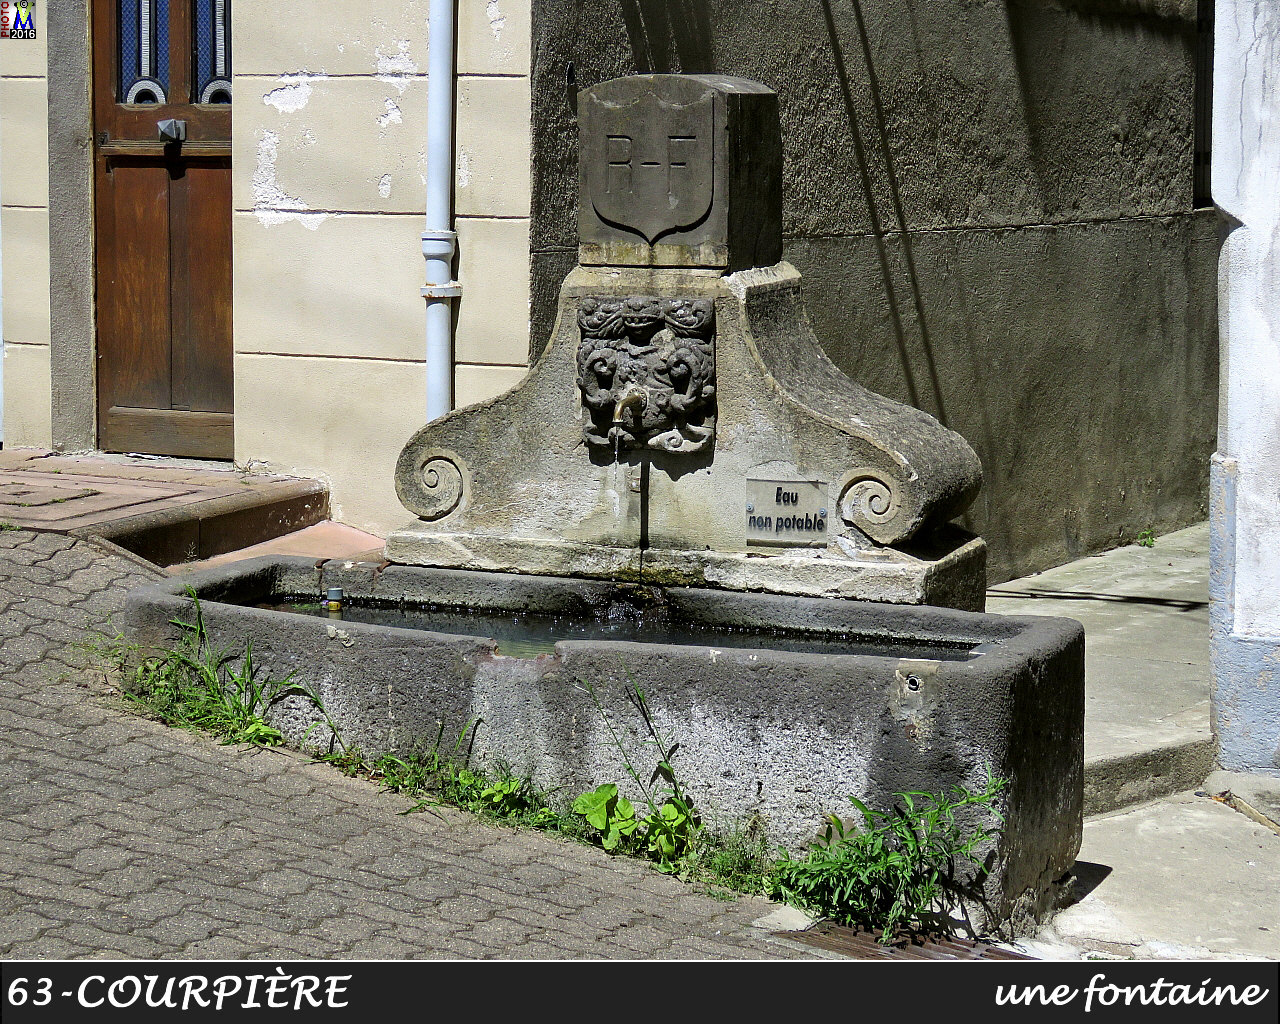 63COURPIERE_fontaine_120.jpg